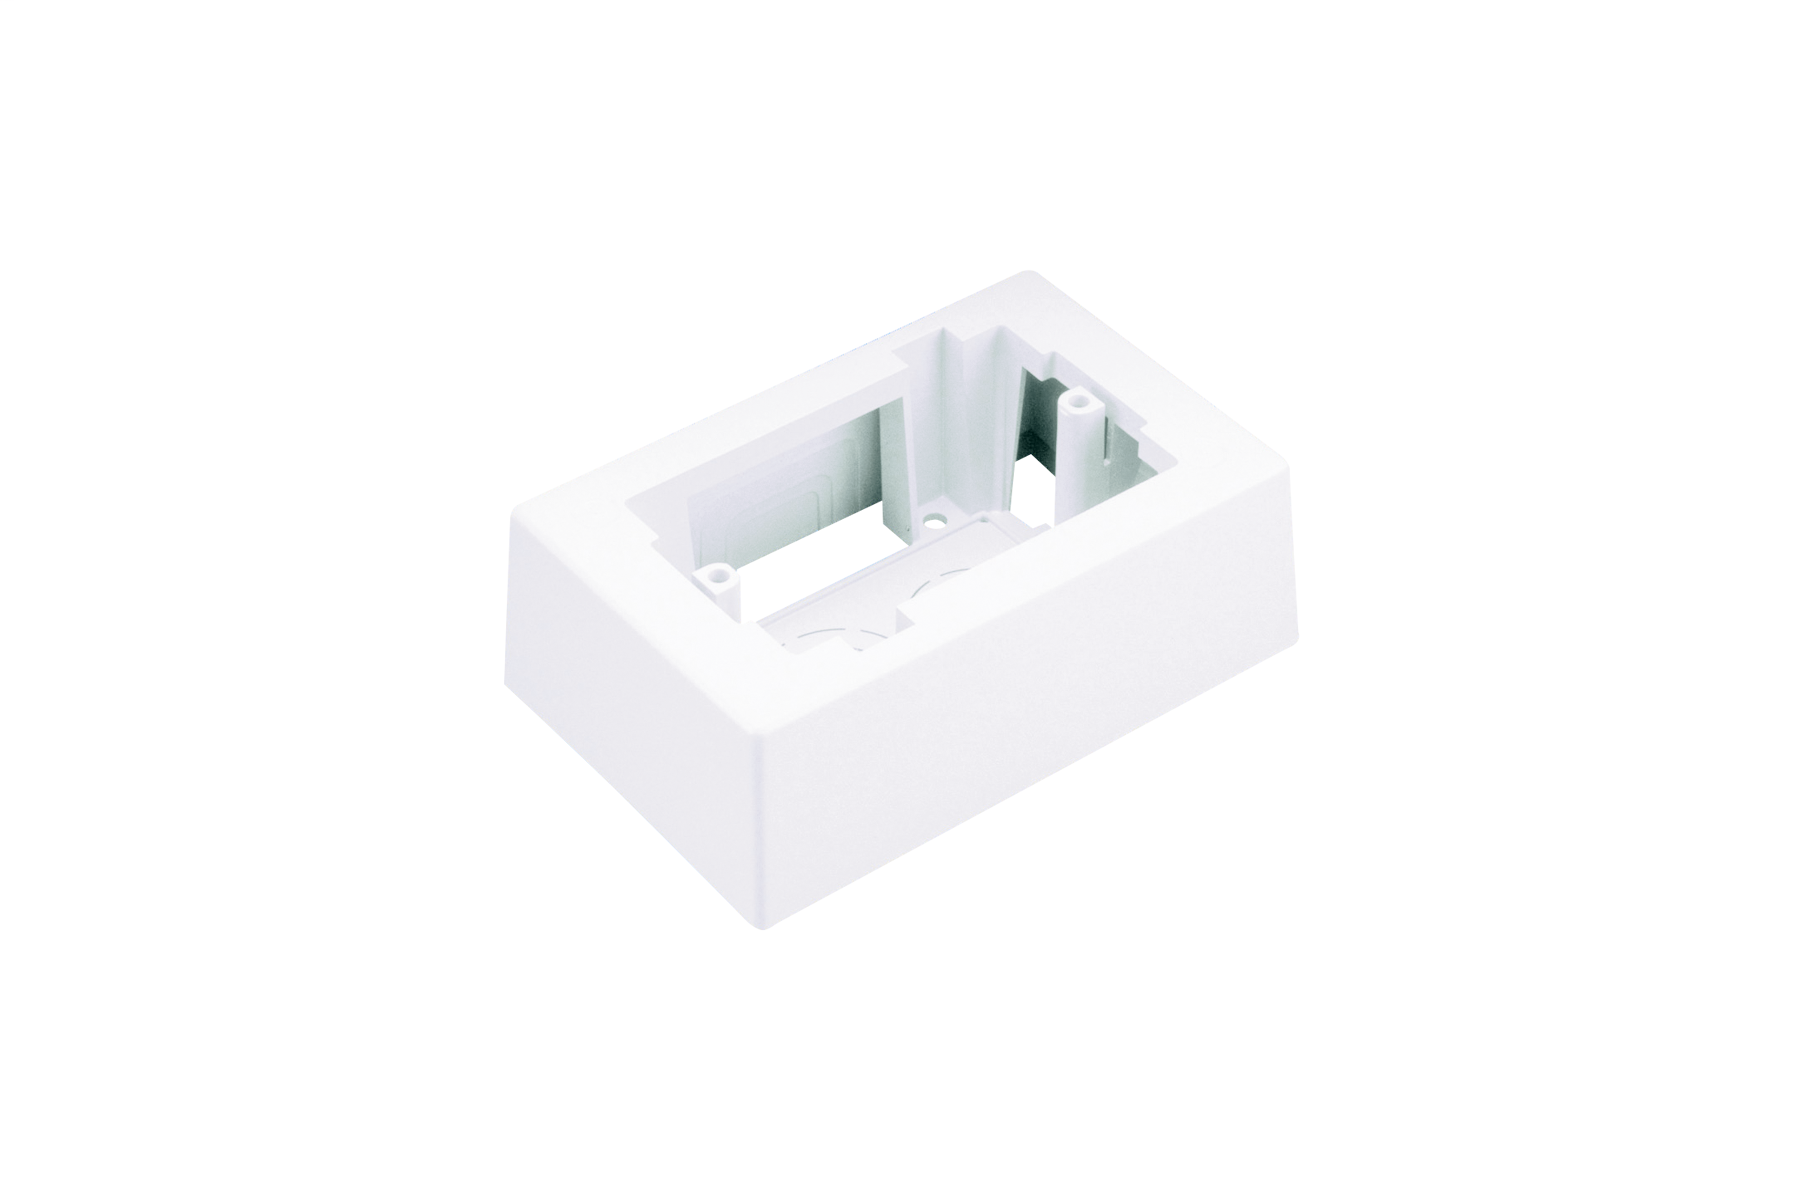 """Mayer-Single gang one-piece outlet box with adhesive backing. Box accepts Pan-Way® Screw-On Faceplates or any NEMA standard single gang faceplate. For use with Pan-Way® LD profile raceway. 5.09""""L x 3.34""""W x 1.75""""H (129.4mm x 85.0mm x 44.4mm). Breakouts for 1/2"""", 3/4"""", or 1"""" diameter conduit.-1"""